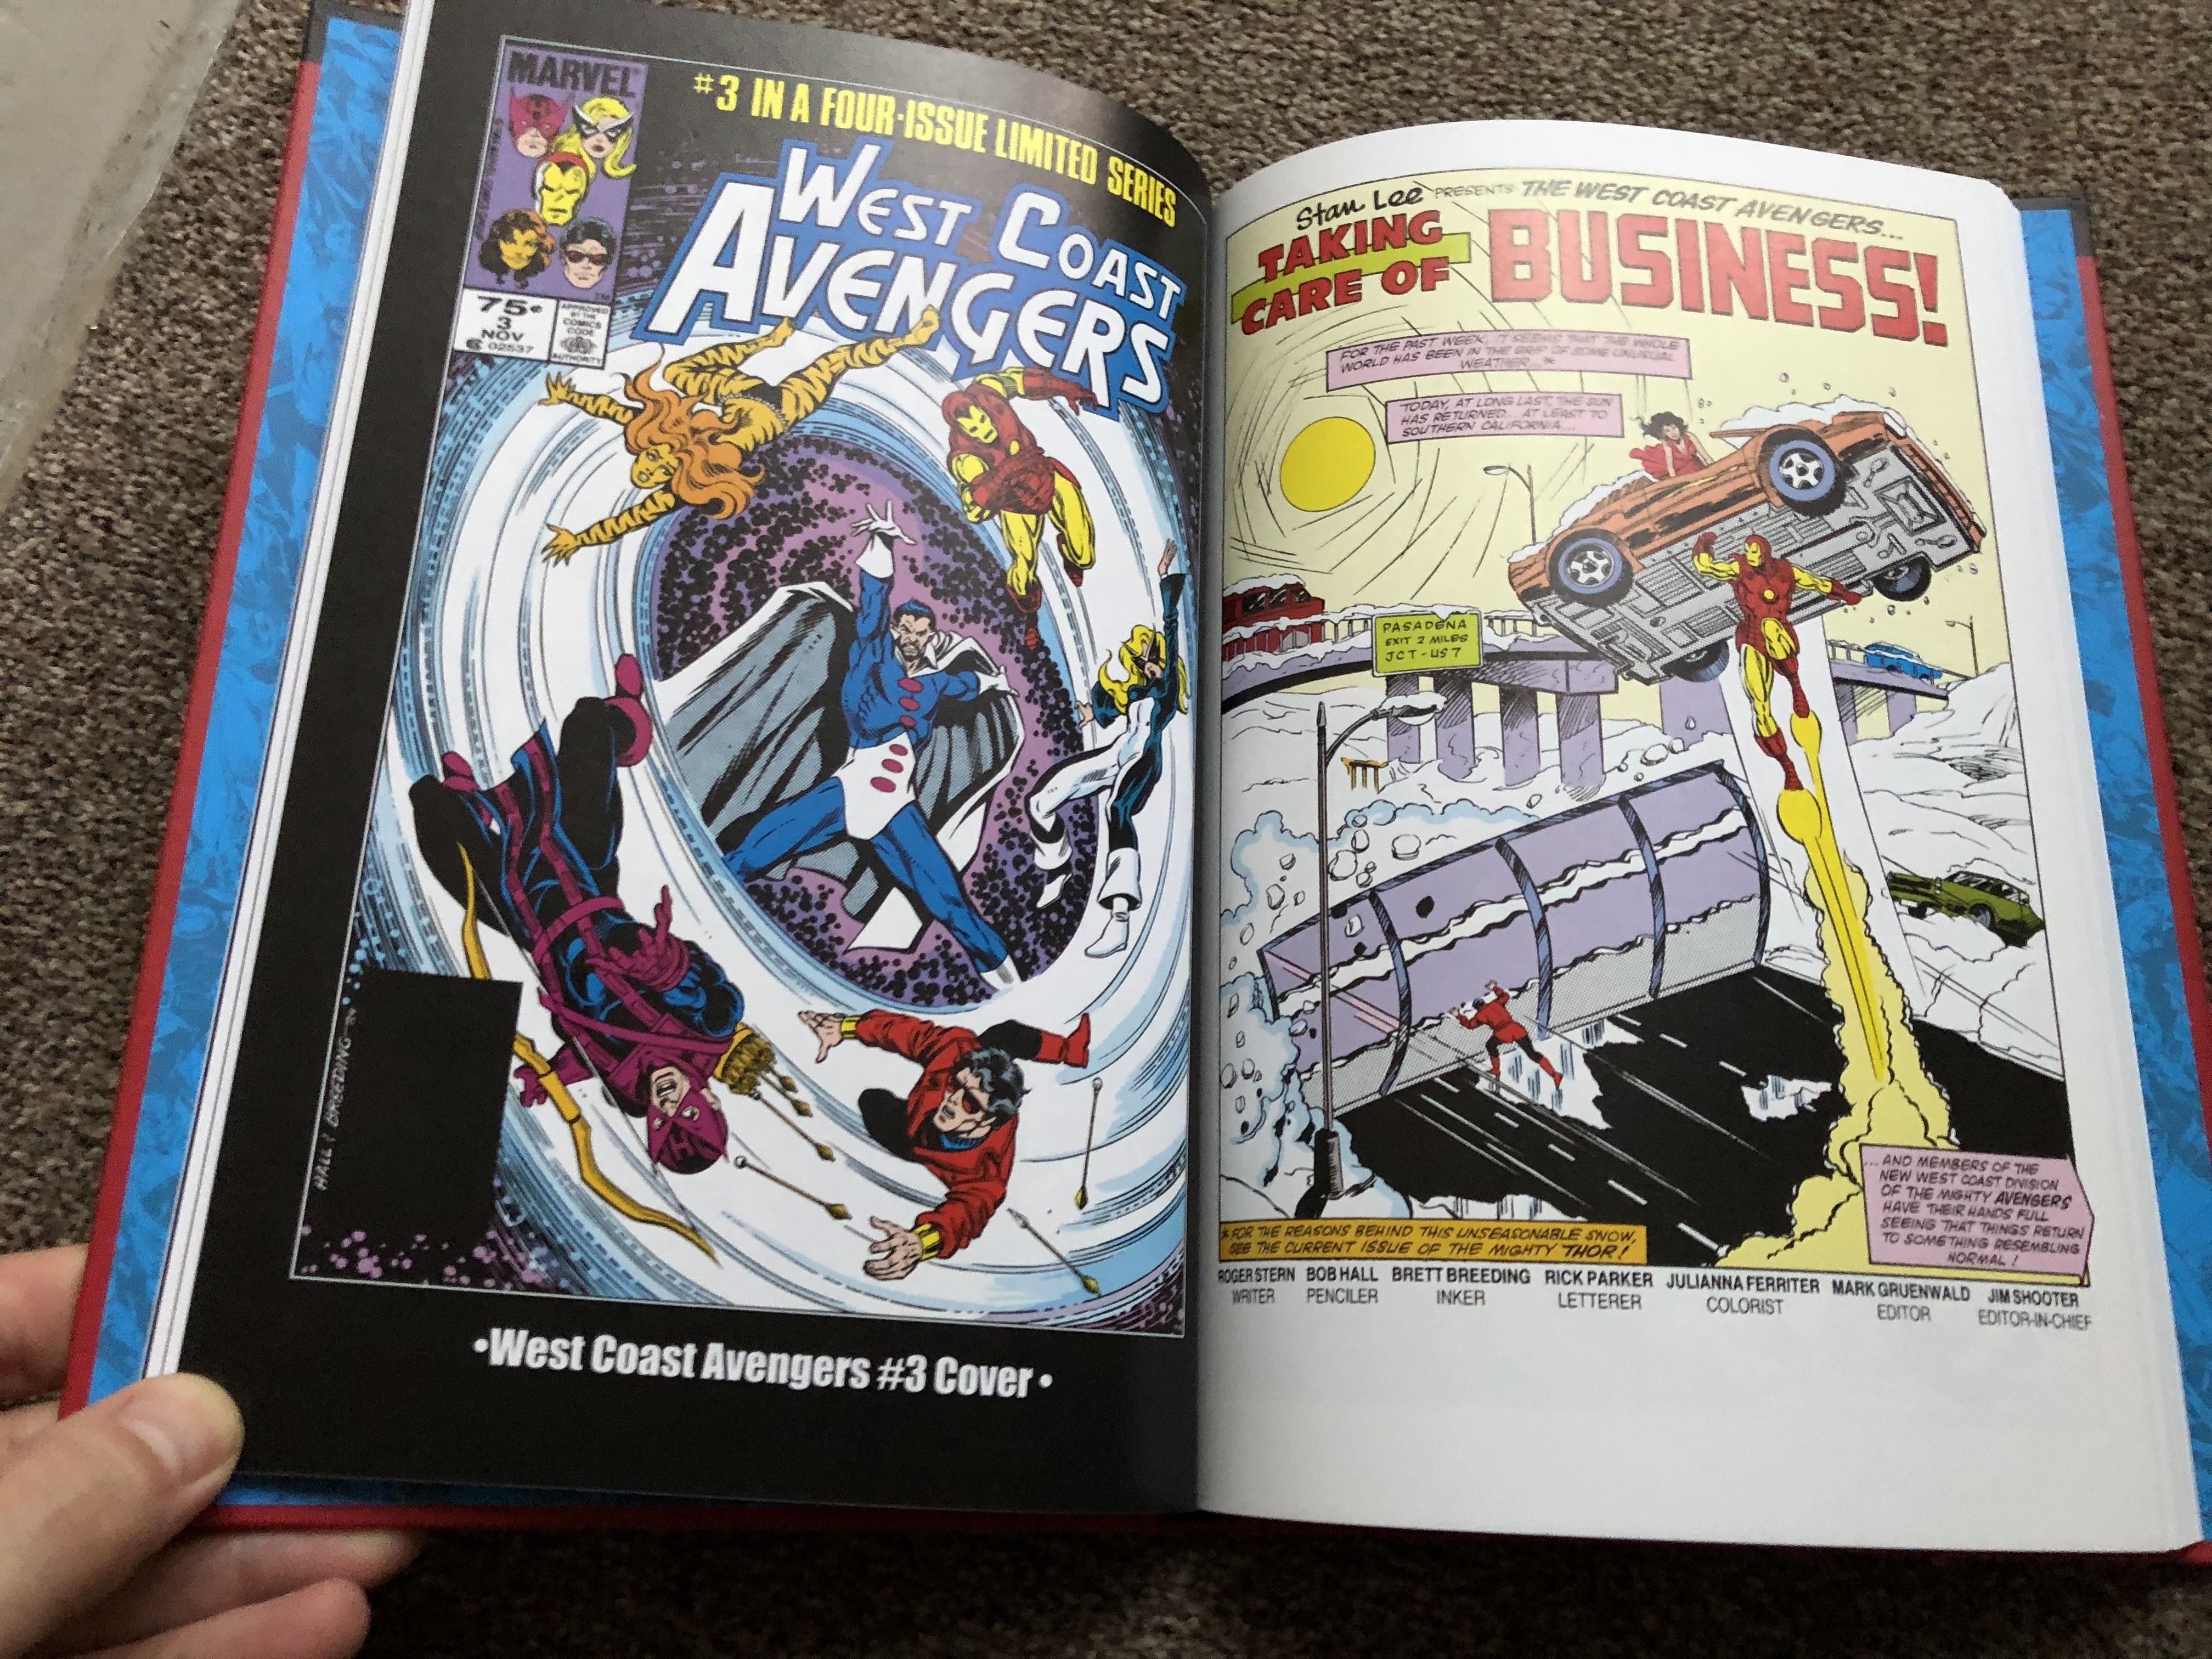 79 West Coast Avengers Marvel S Mightiest Heroes Graphic Novel Hachette Partworks 2nd Series Graphic Novel Marvel Avengers